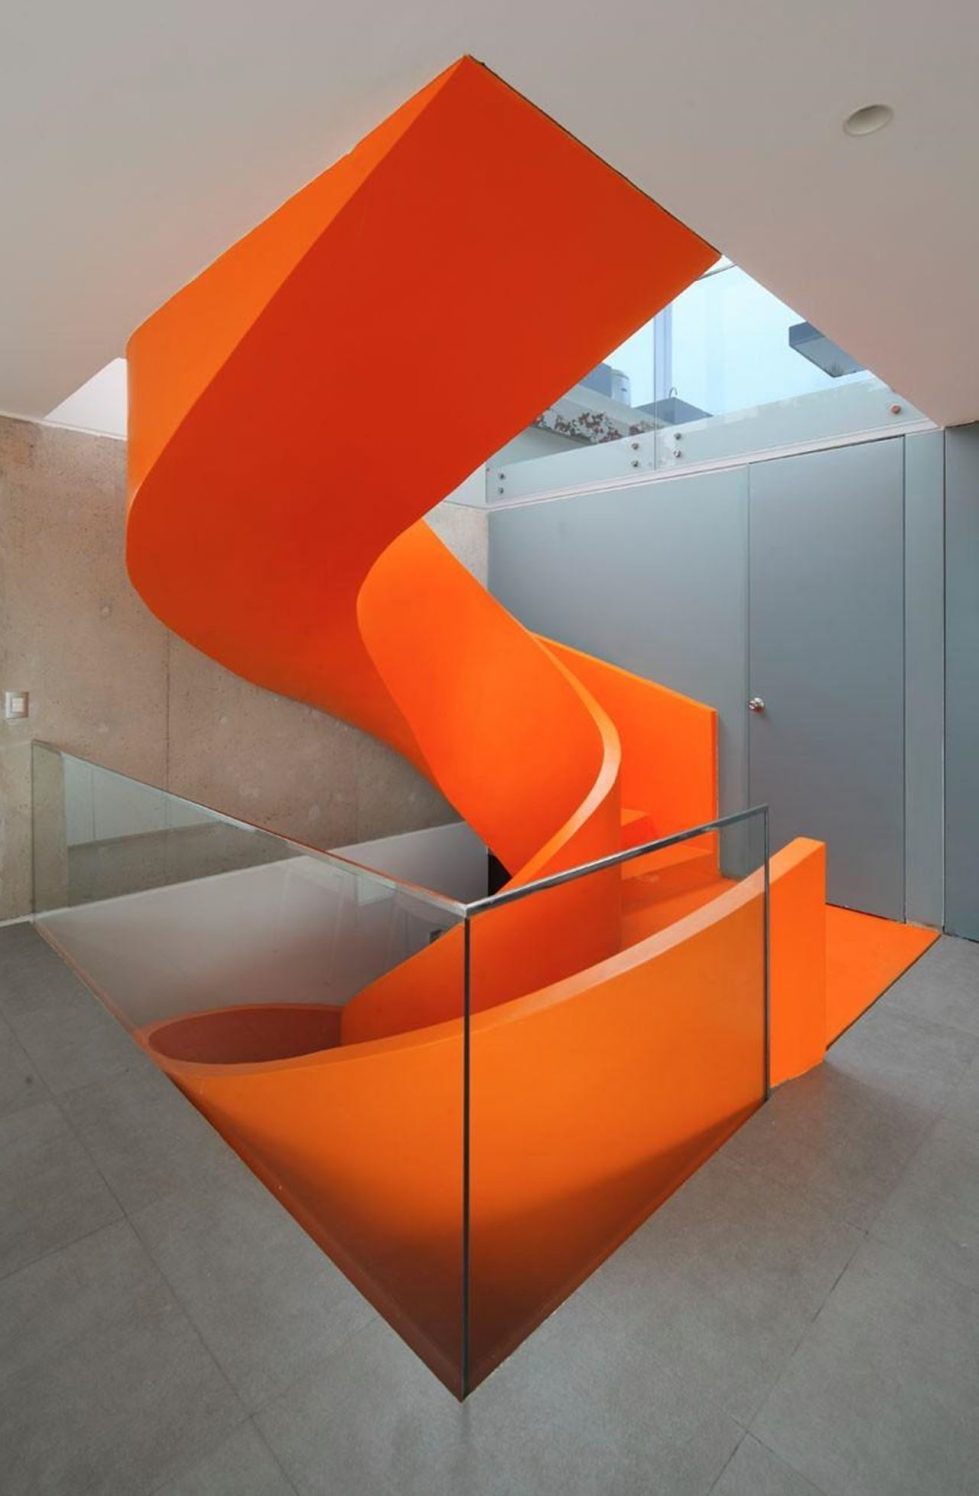 Attractive Open-Terraced House with Orange Staircase 4